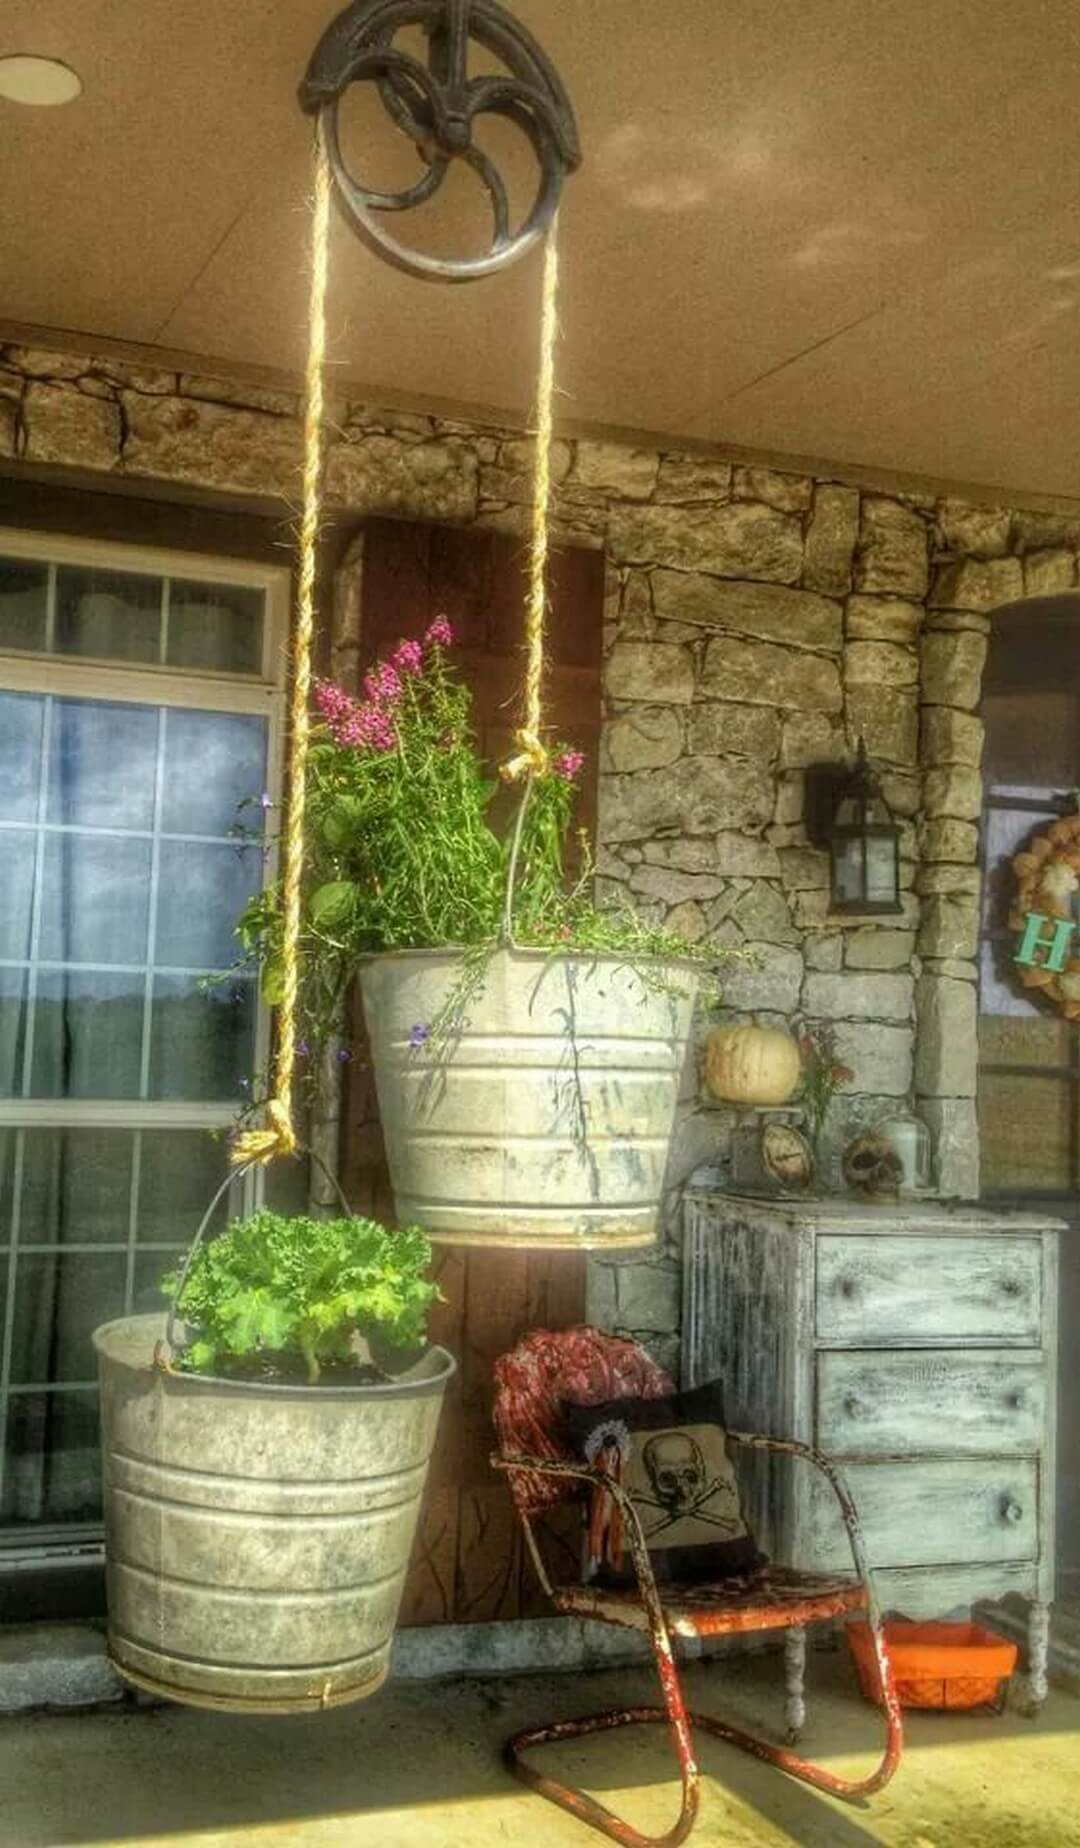 Hang Your Flowers in Galvanized Buckets